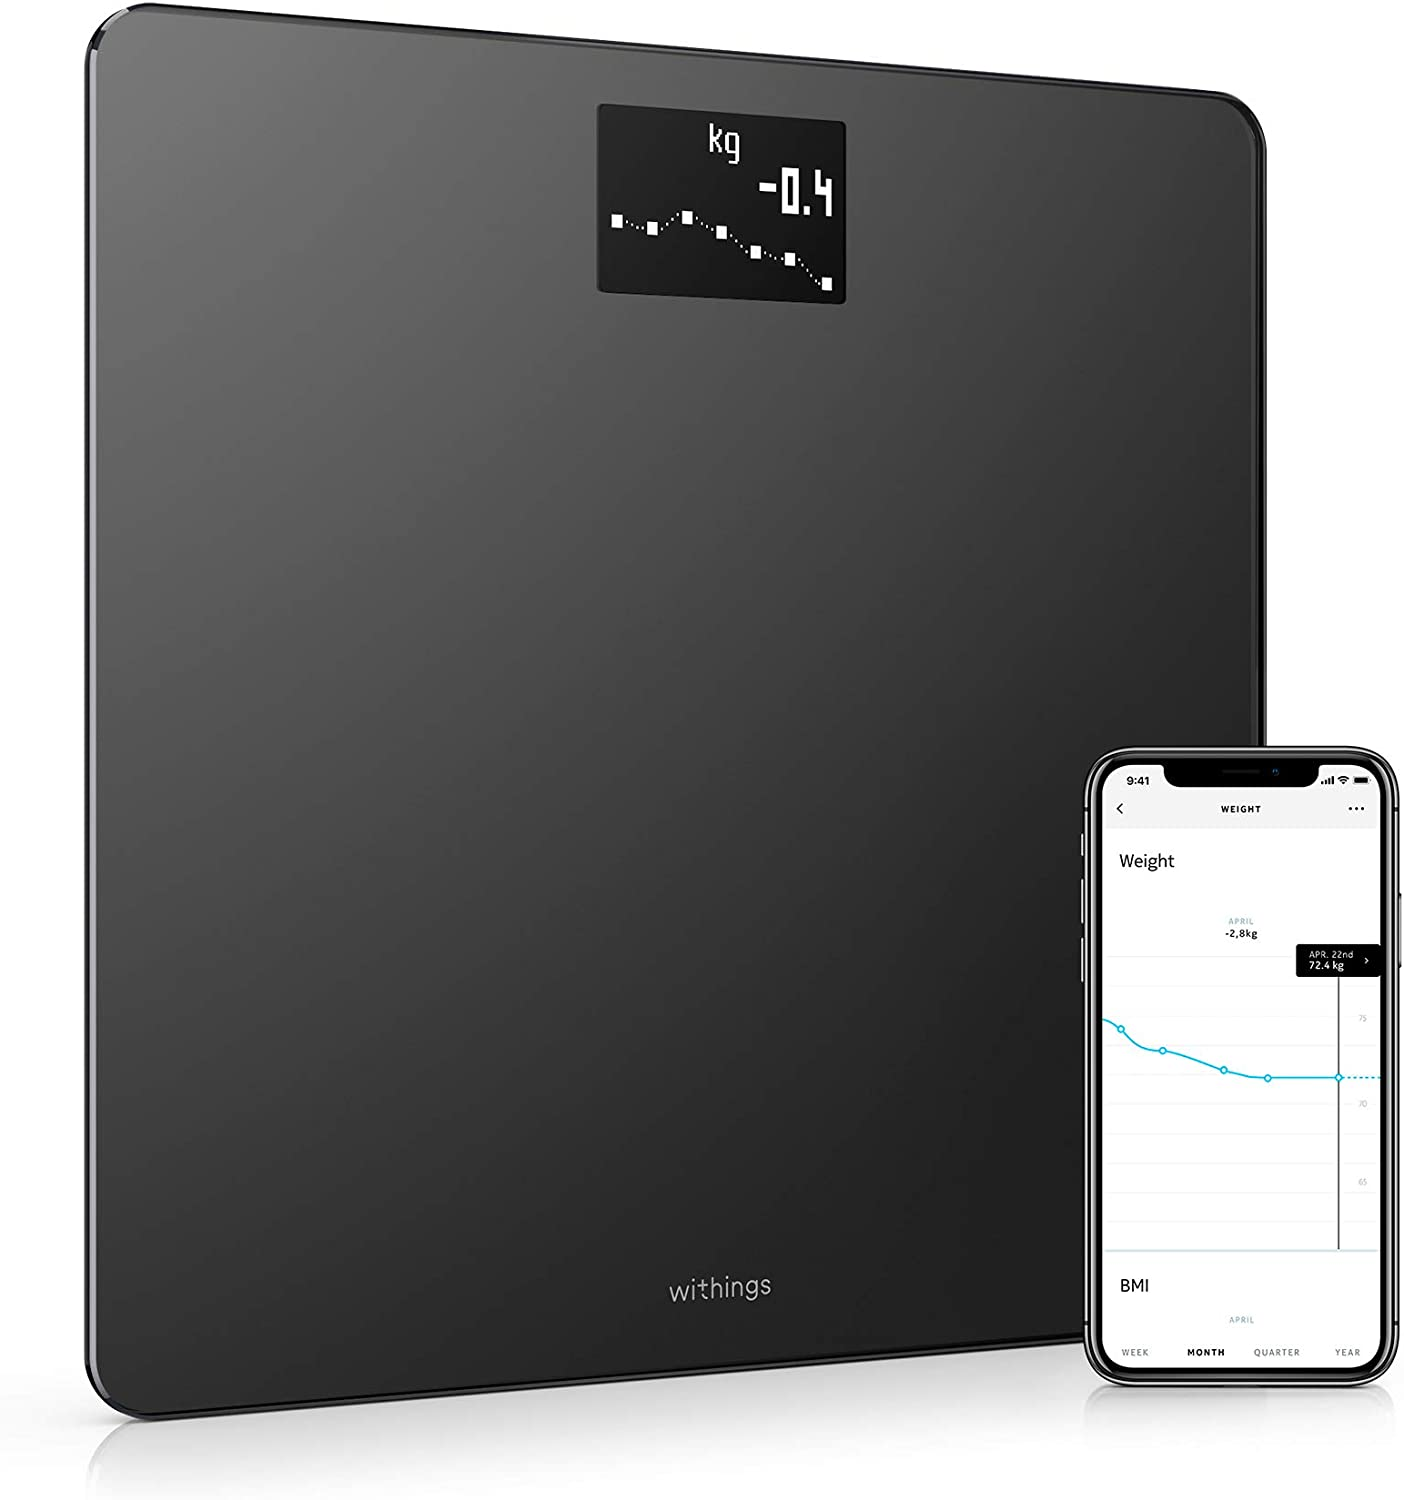 Body Compostion Wi-Fi Scale Black Weighing Scales Diet Help NEW Nokia Body